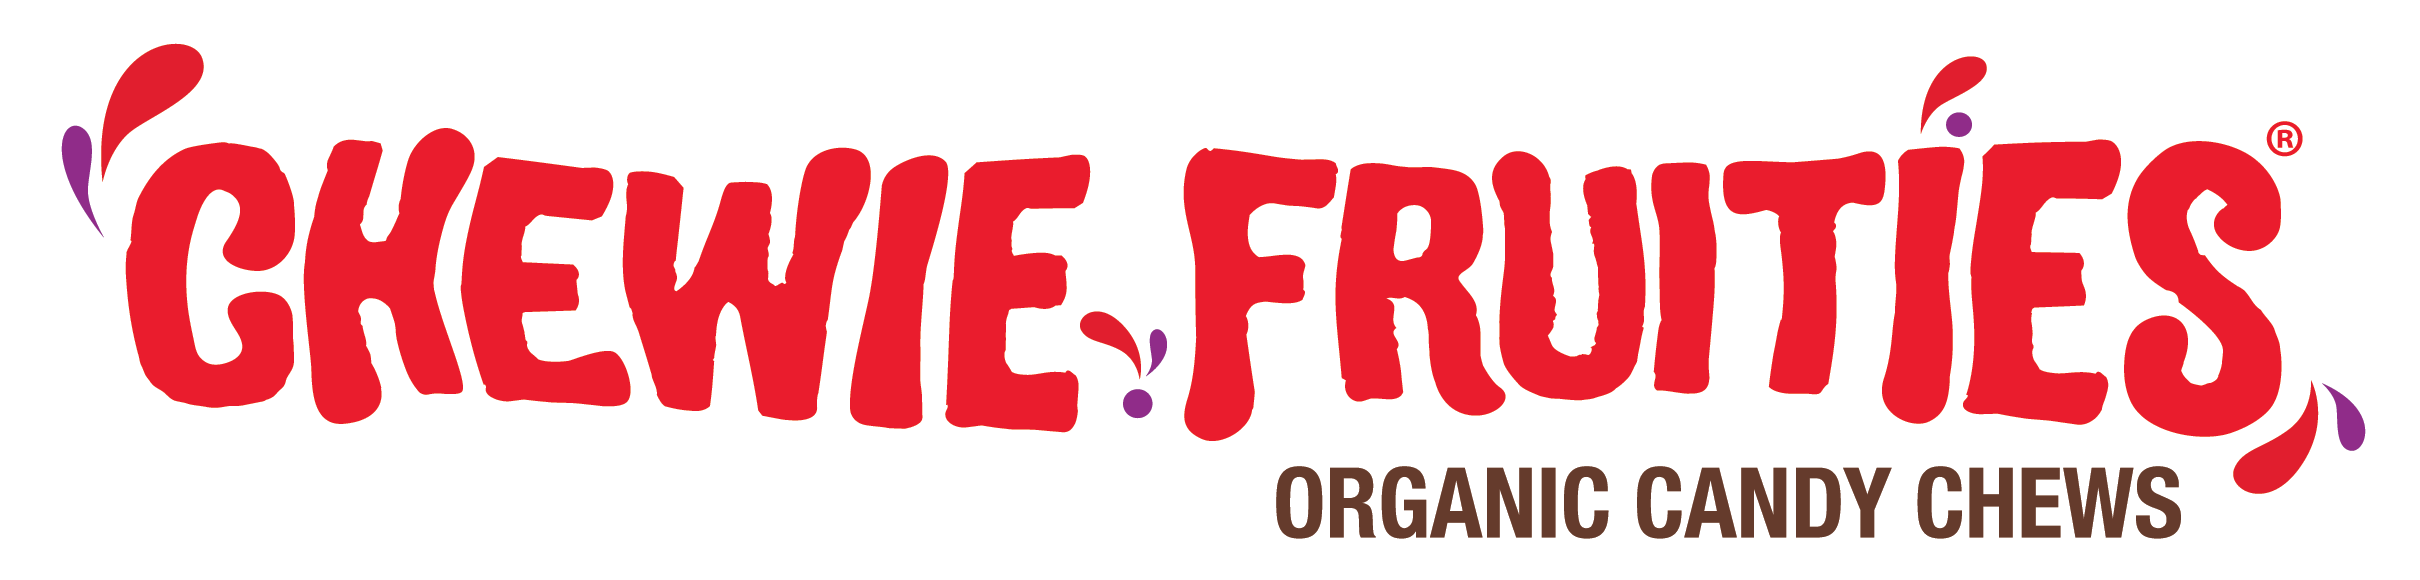 Chewie Fruities Logo